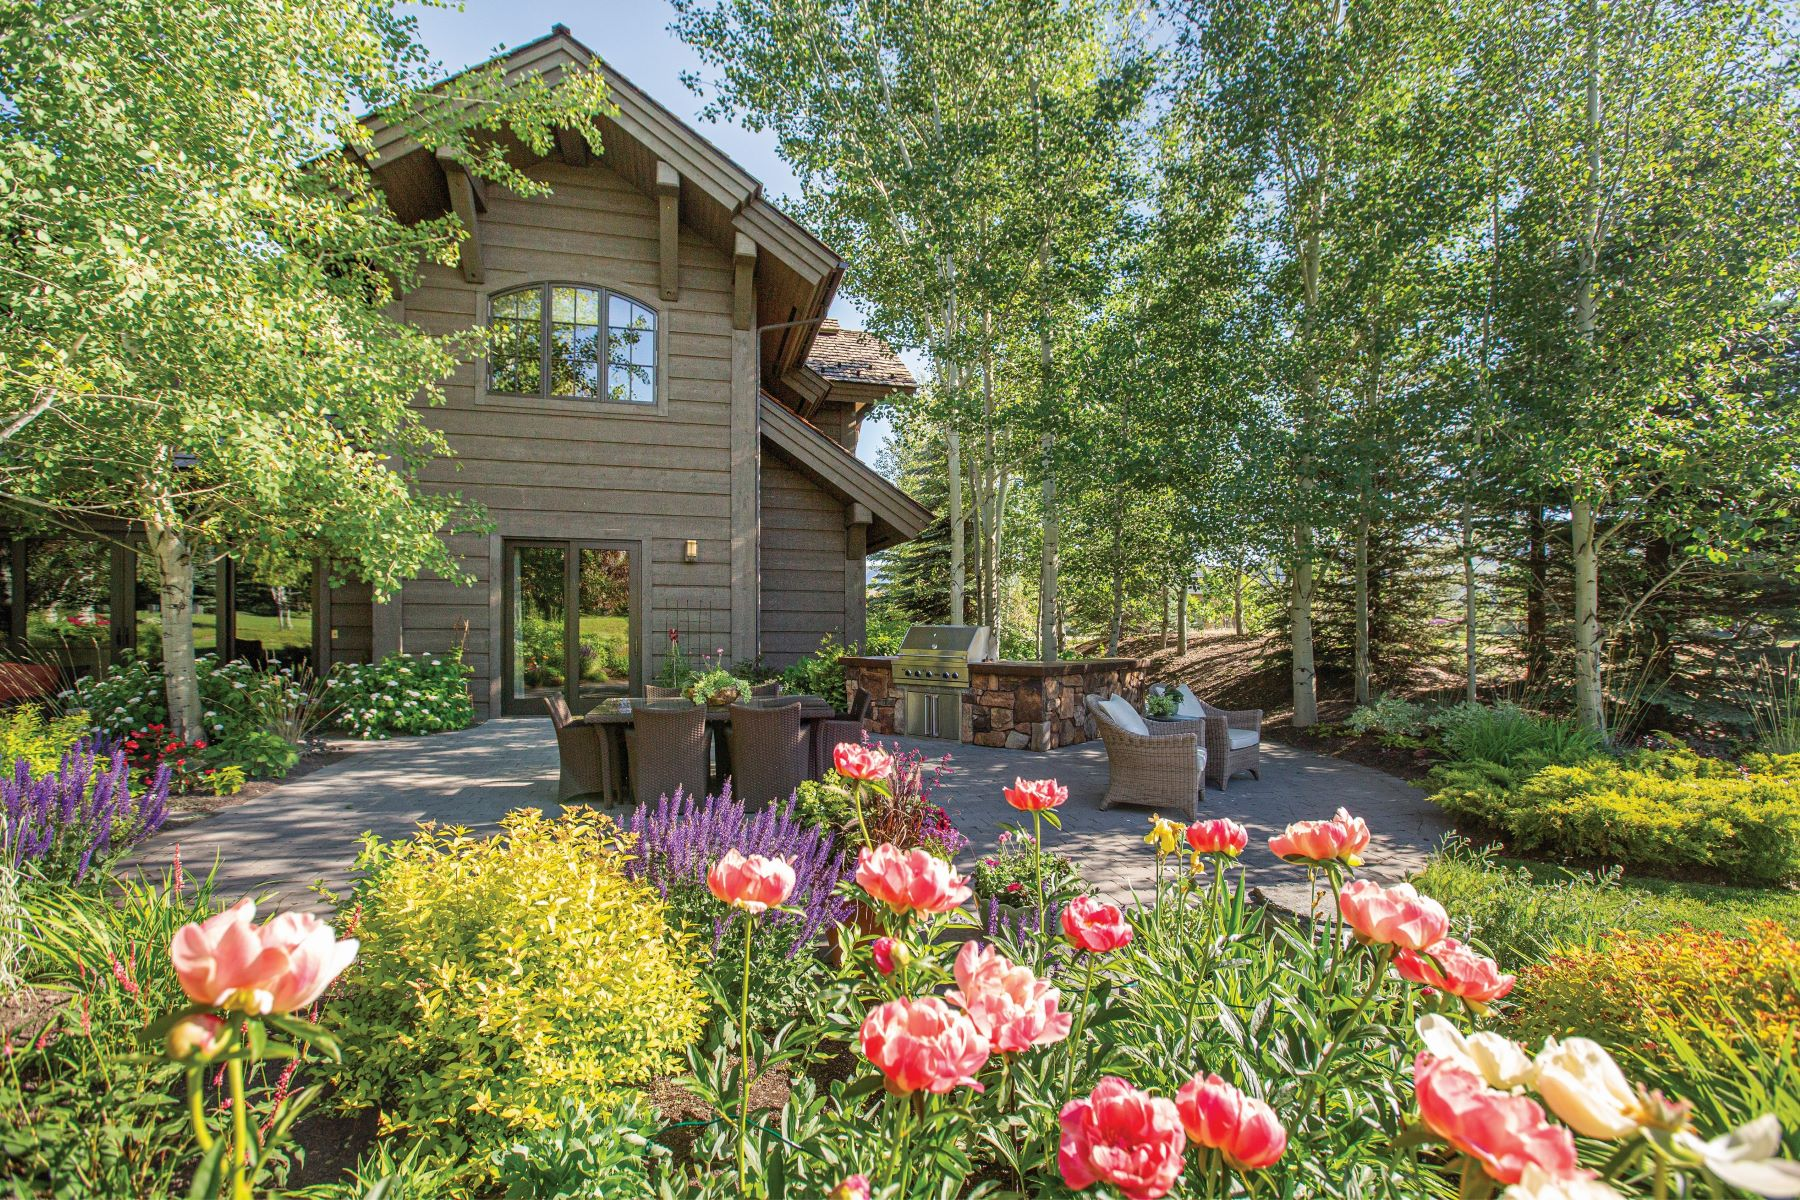 Single Family Homes for Sale at An Idyllic Garden Retreat 19 Streamside Drive Hailey, Idaho 83333 United States